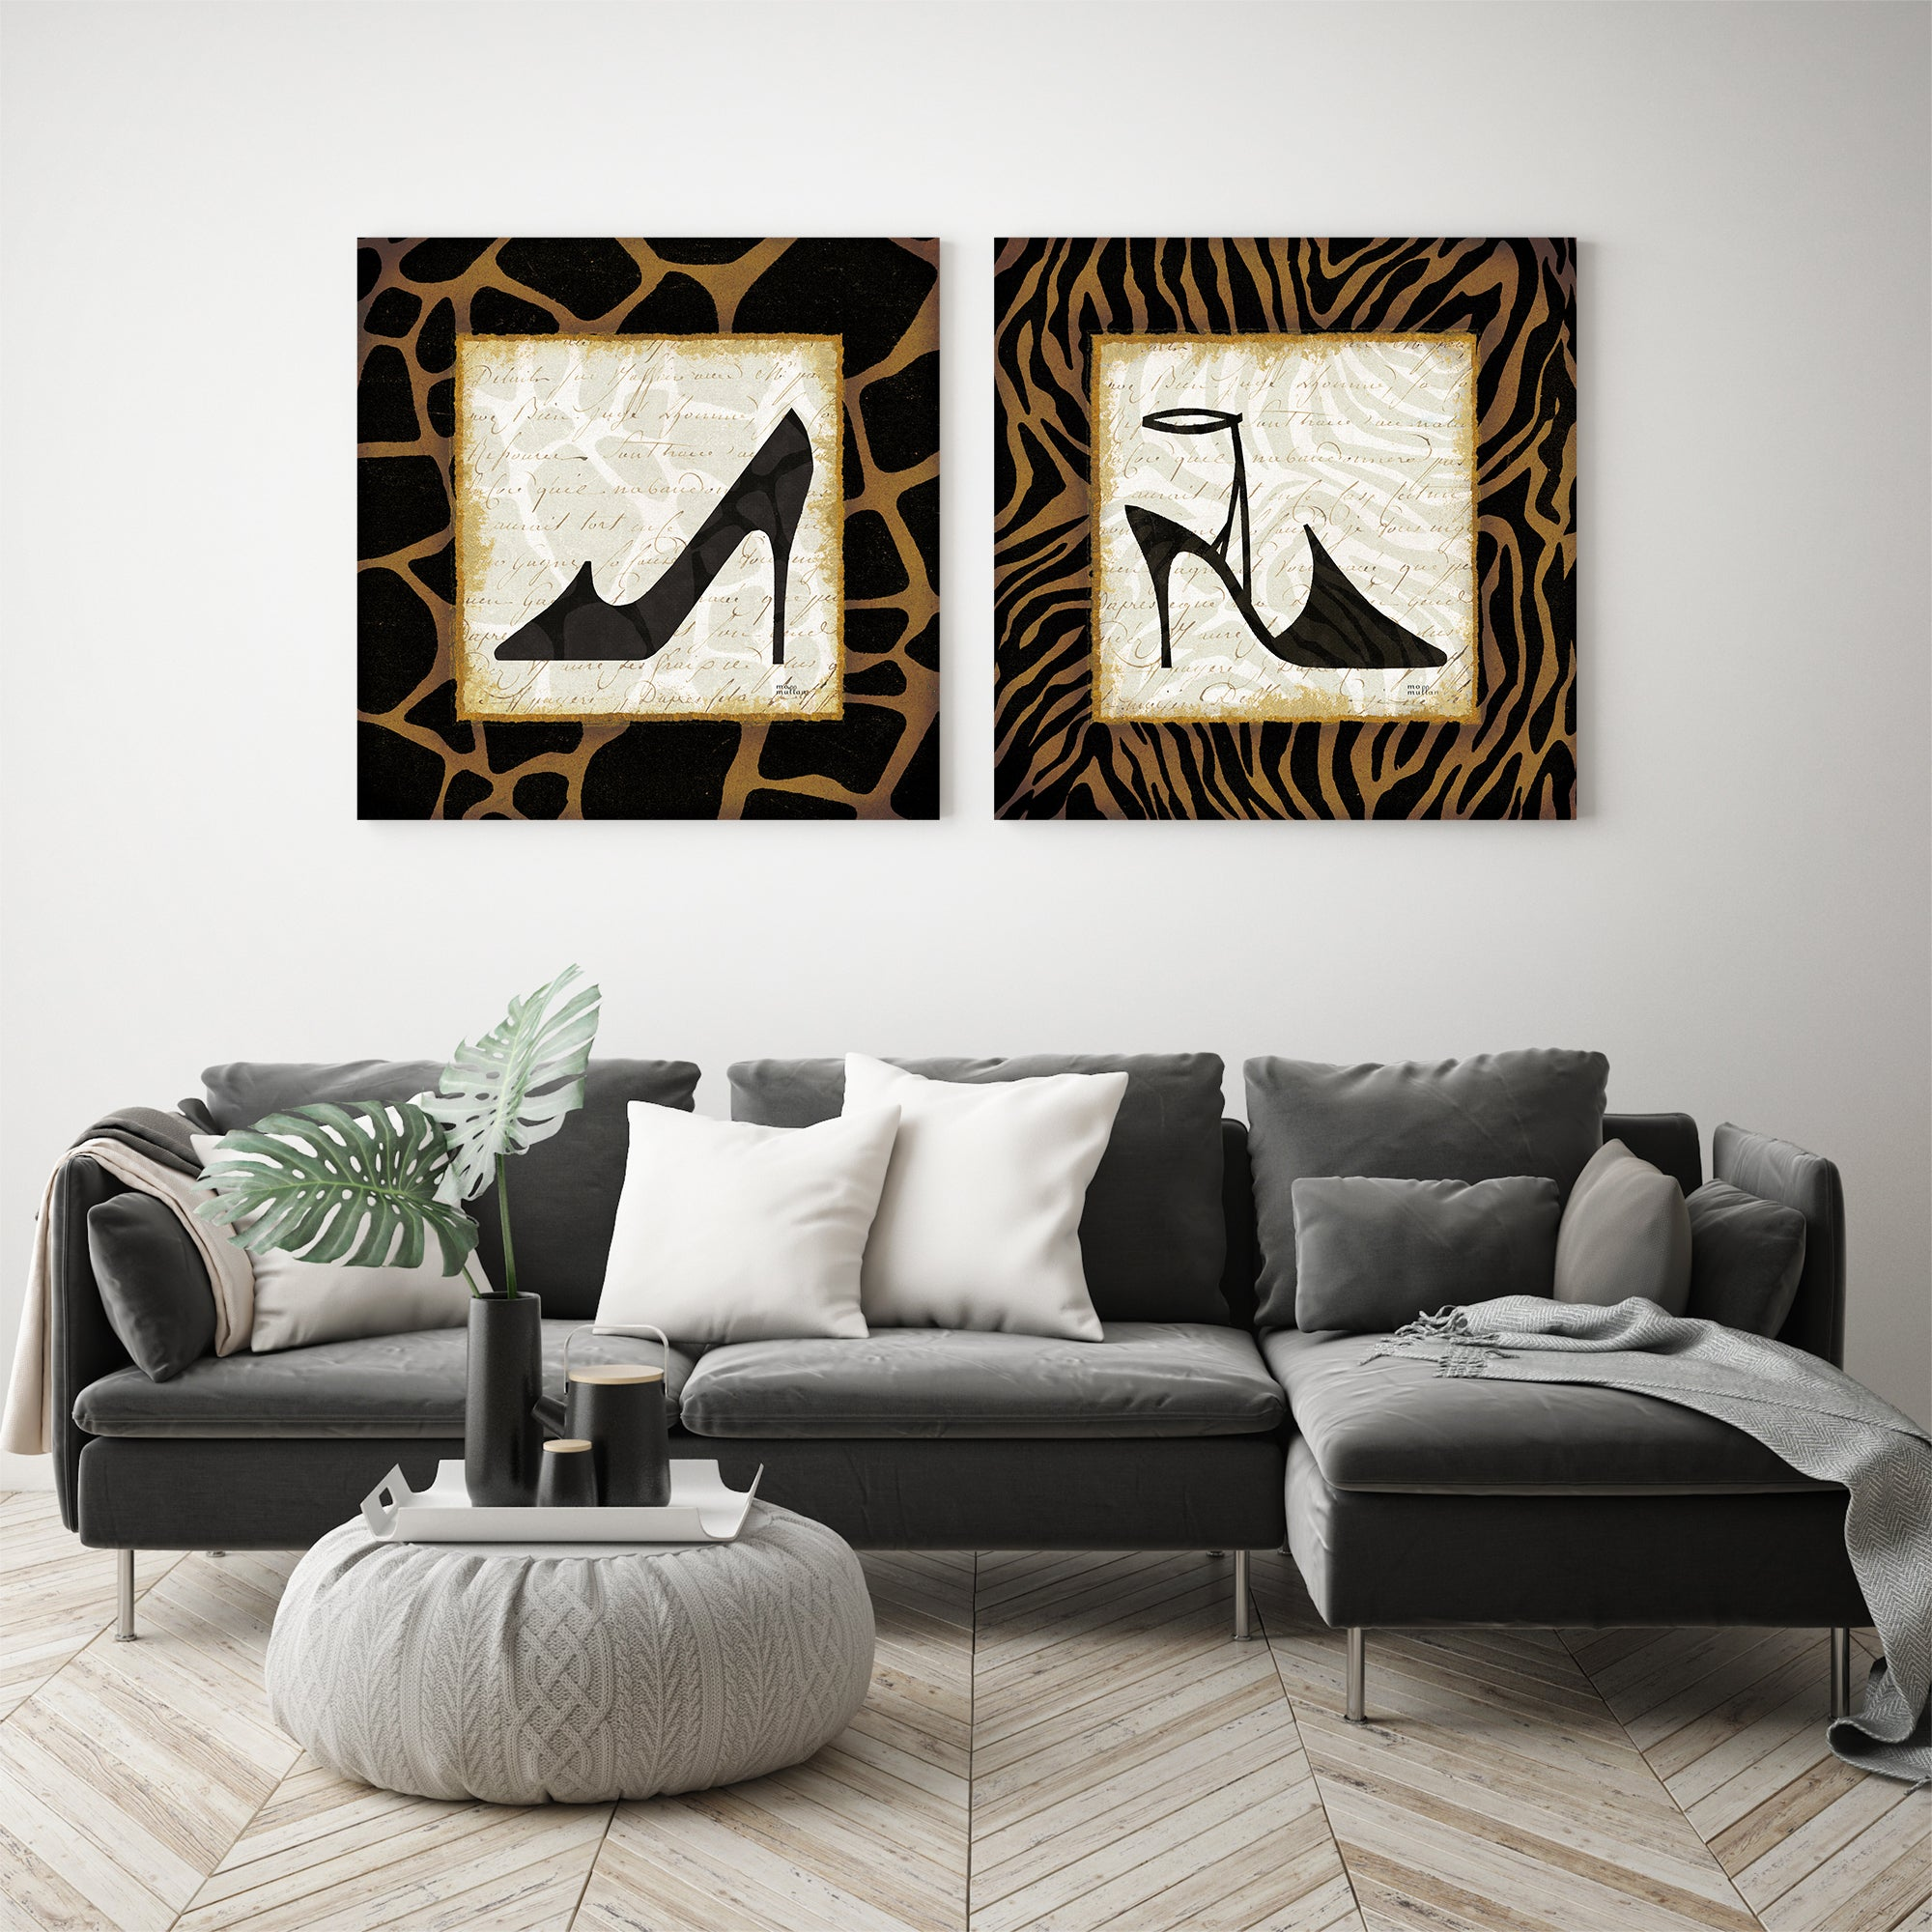 Safari Shoes - 2 Piece Gallery Wrapped Canvas Set by Wild Apple Portfolio - Art Set - Americanflat